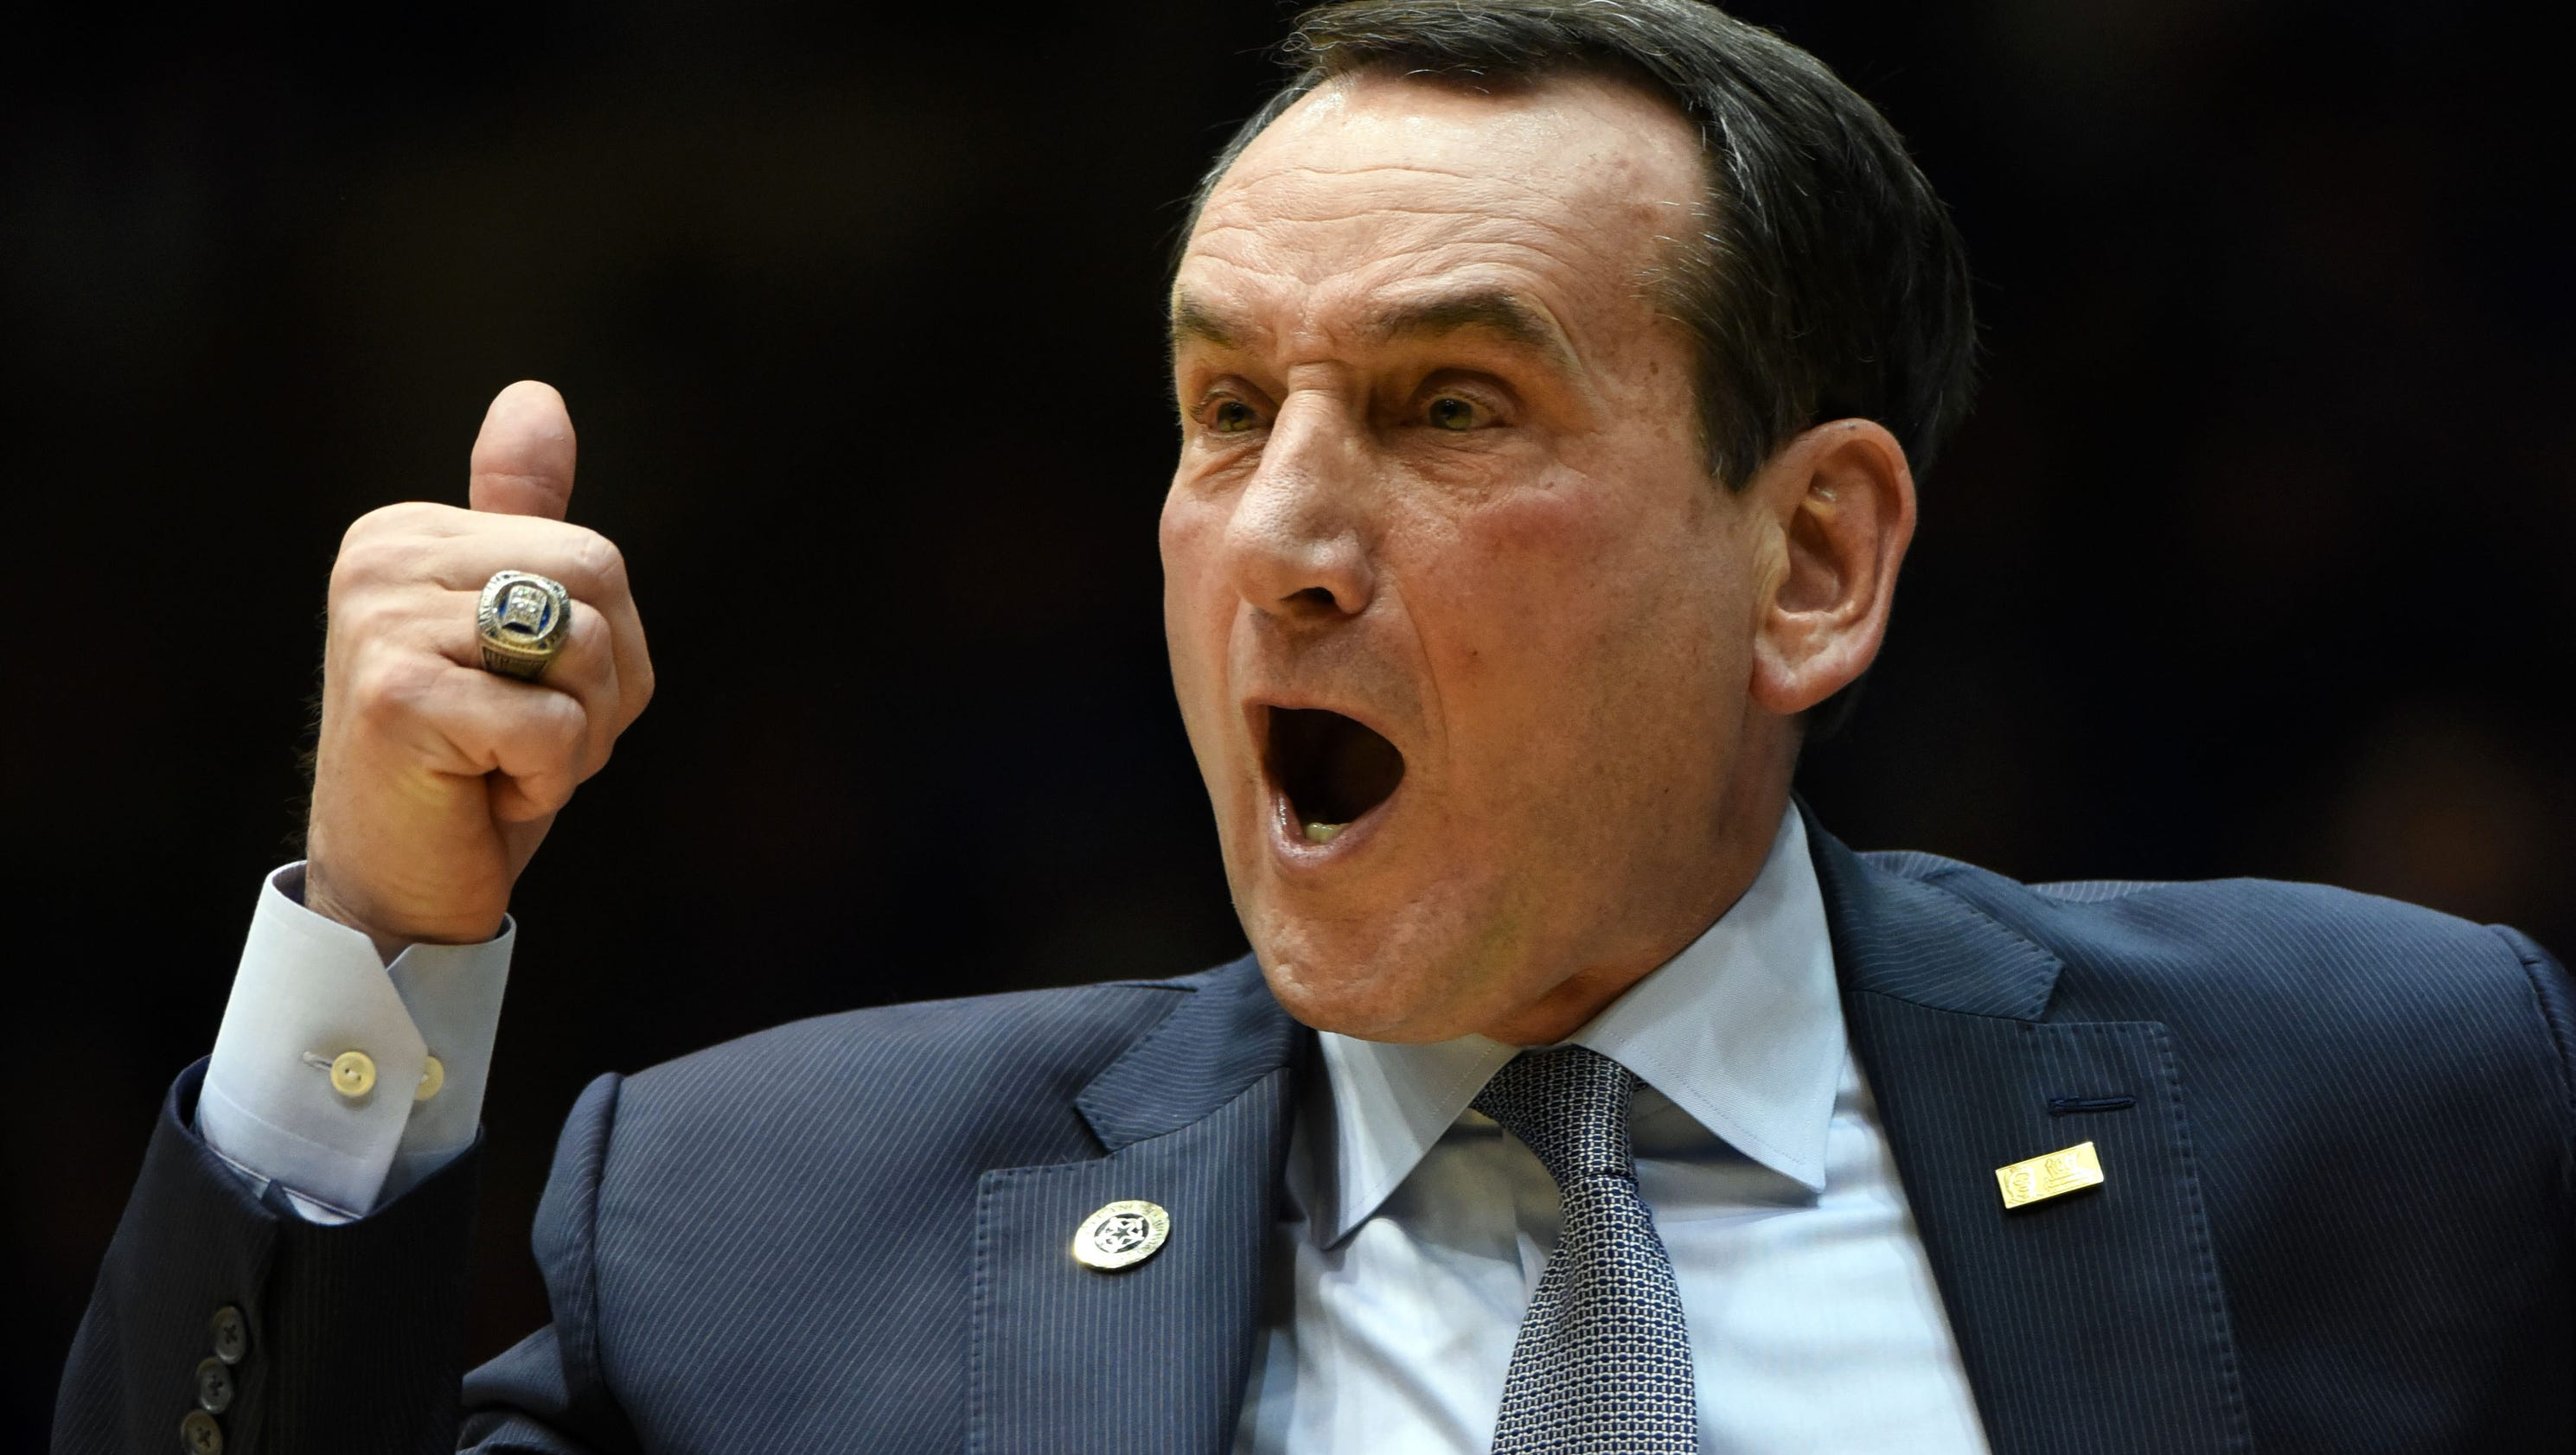 NCAA coaches' pay: Capitalism meets amateurism